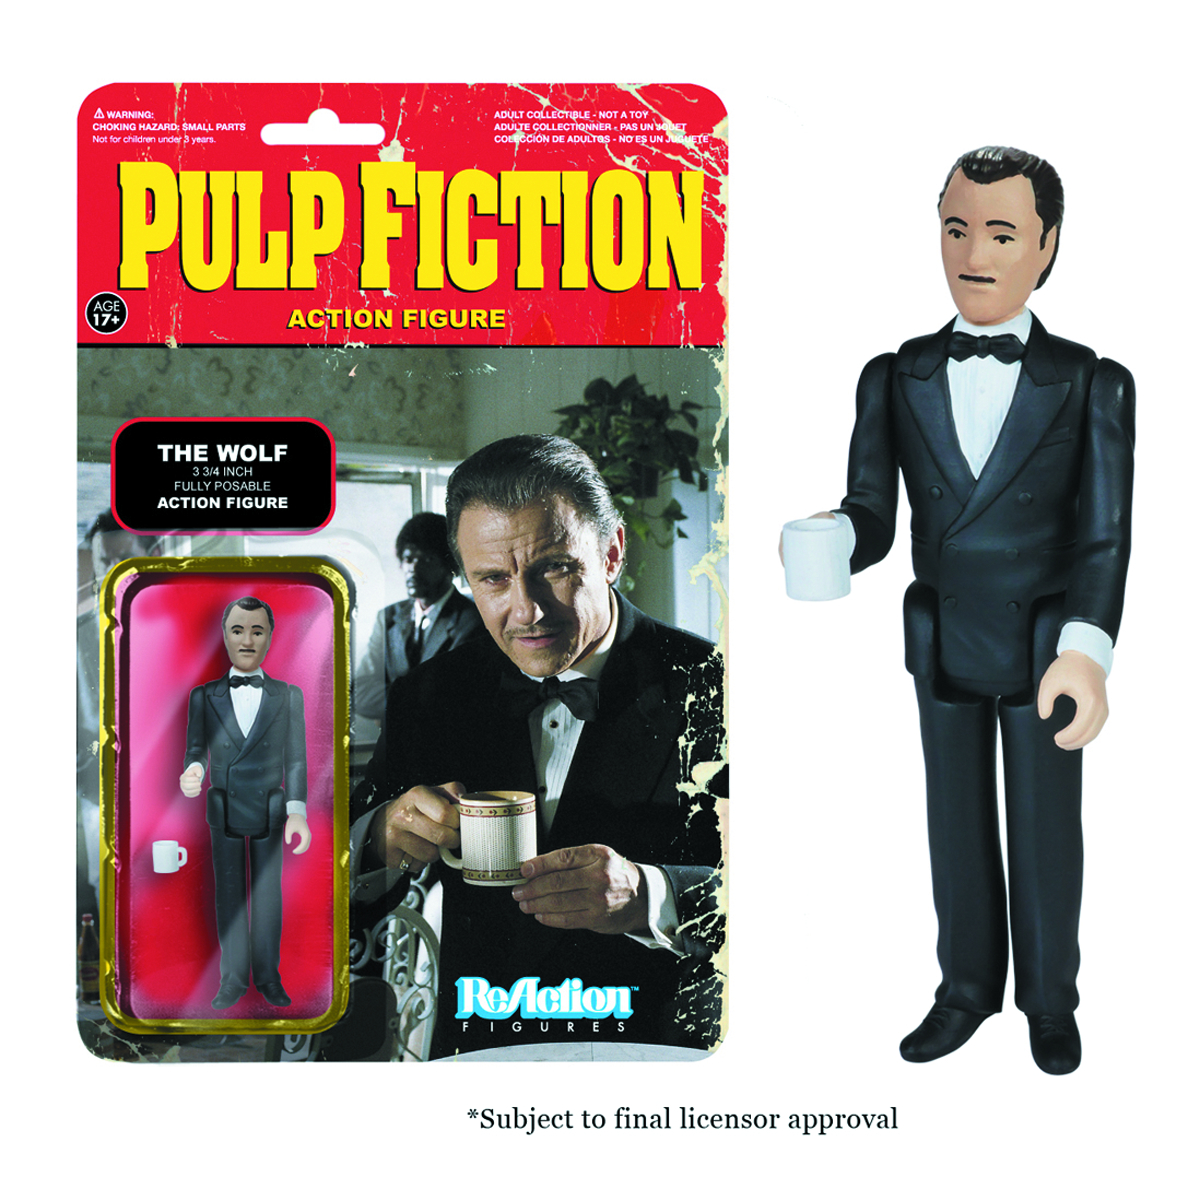 REACTION PULP FICTION THE WOLF FIG